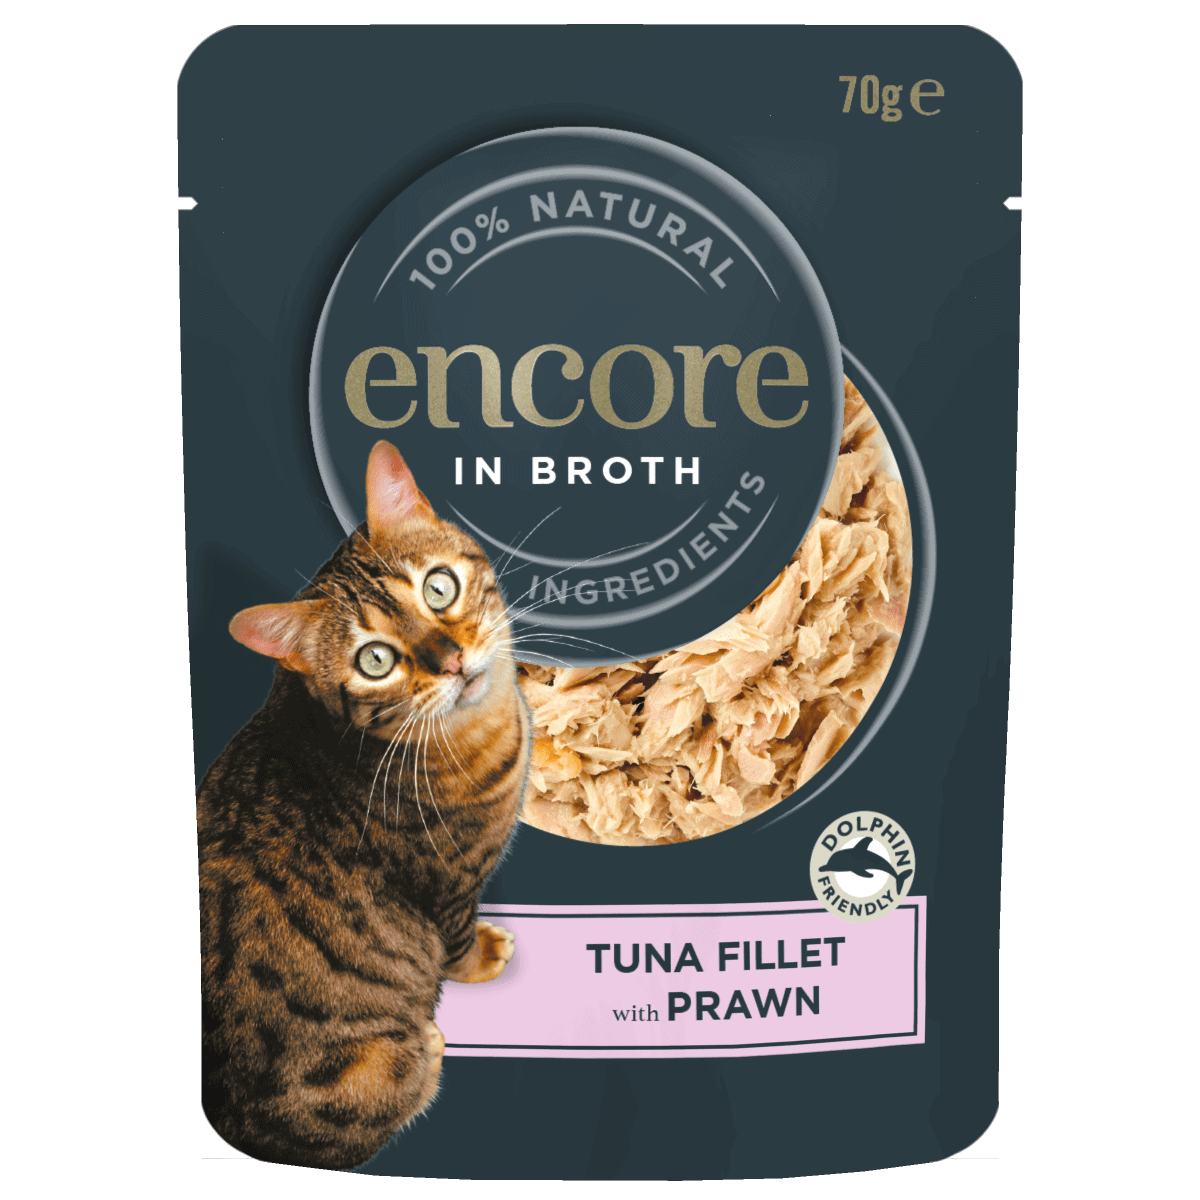 Close up of an Encore in broth tuna fillet with prawn cat food pouch